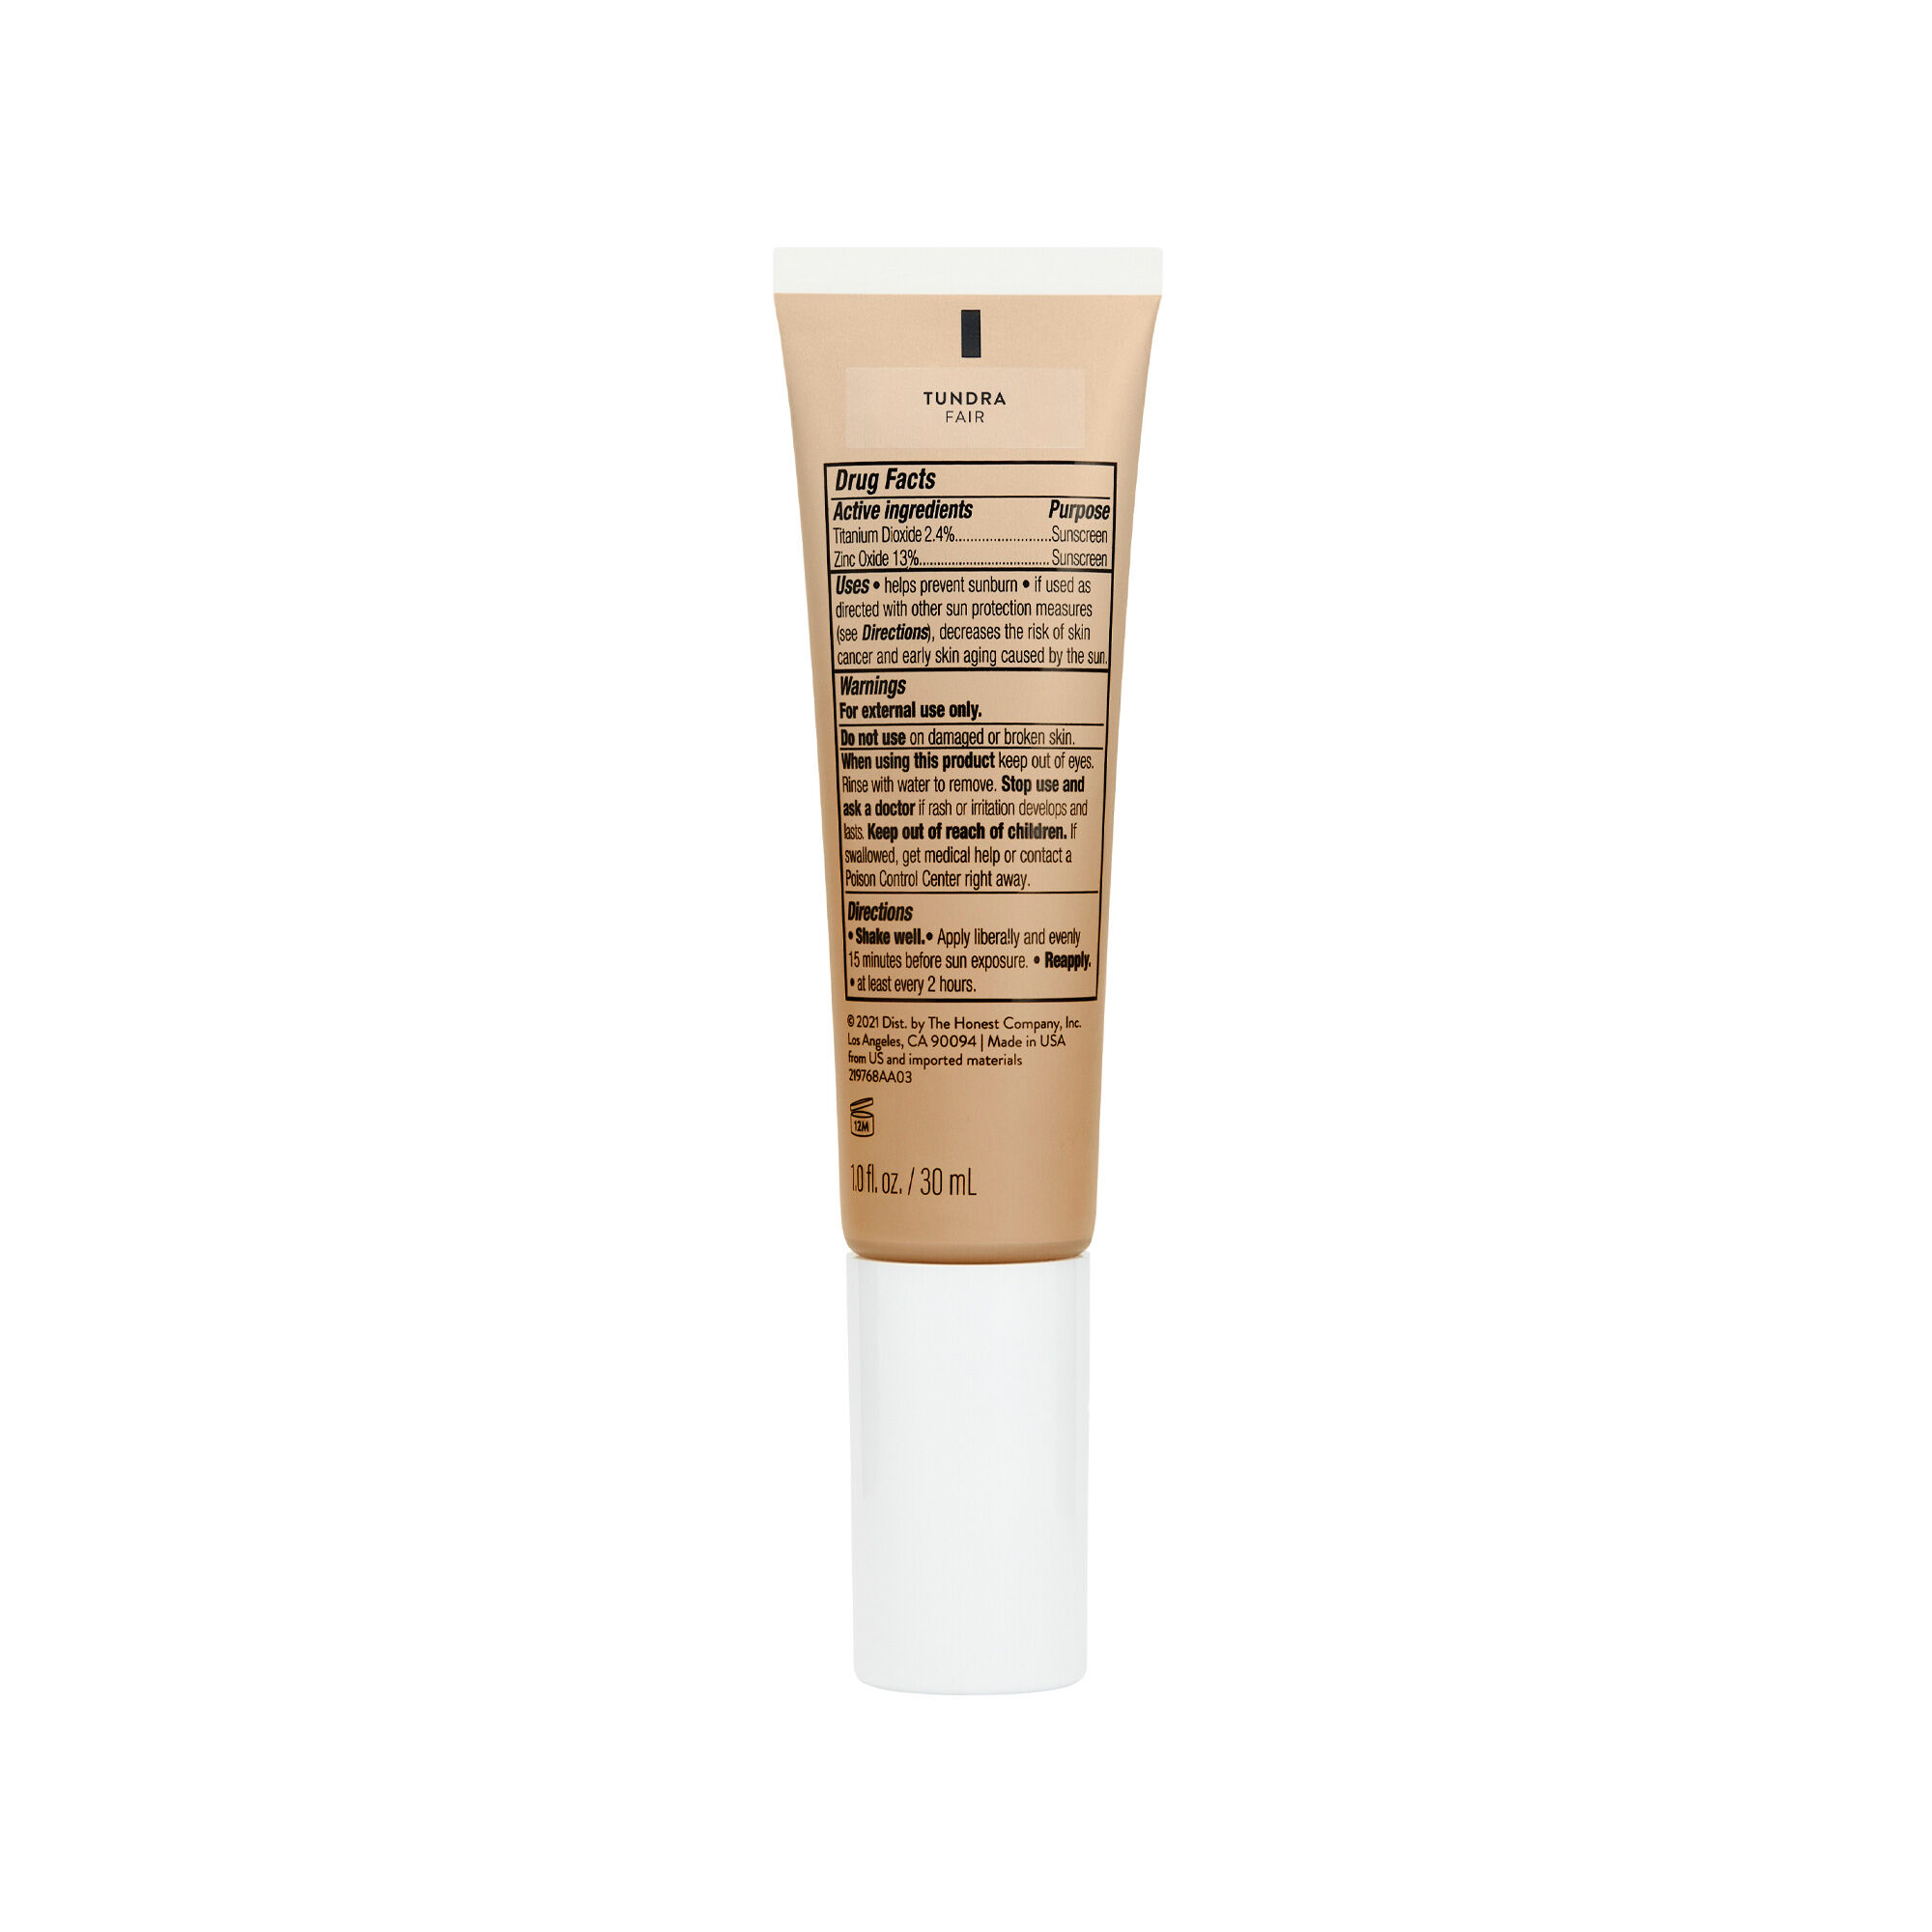 CCC Clean Corrective With Vitamin C Tinted Moisturizer Broad Spectrum SPF 30, Tundra